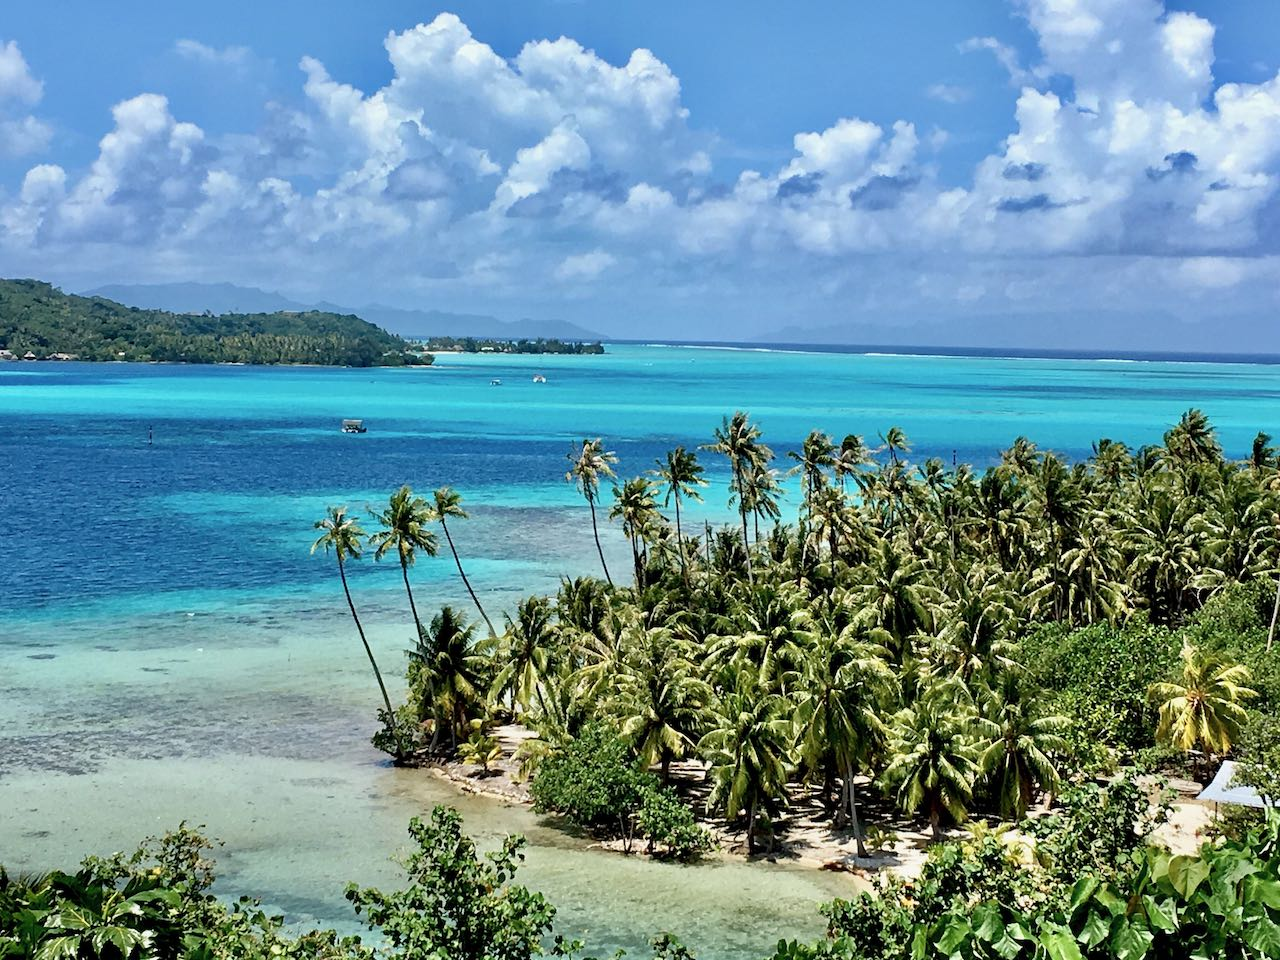 Conrad Bora Bora Nui is the best resort in the Western Hemisphere (and Pacific) and tied for second best resort in the world.